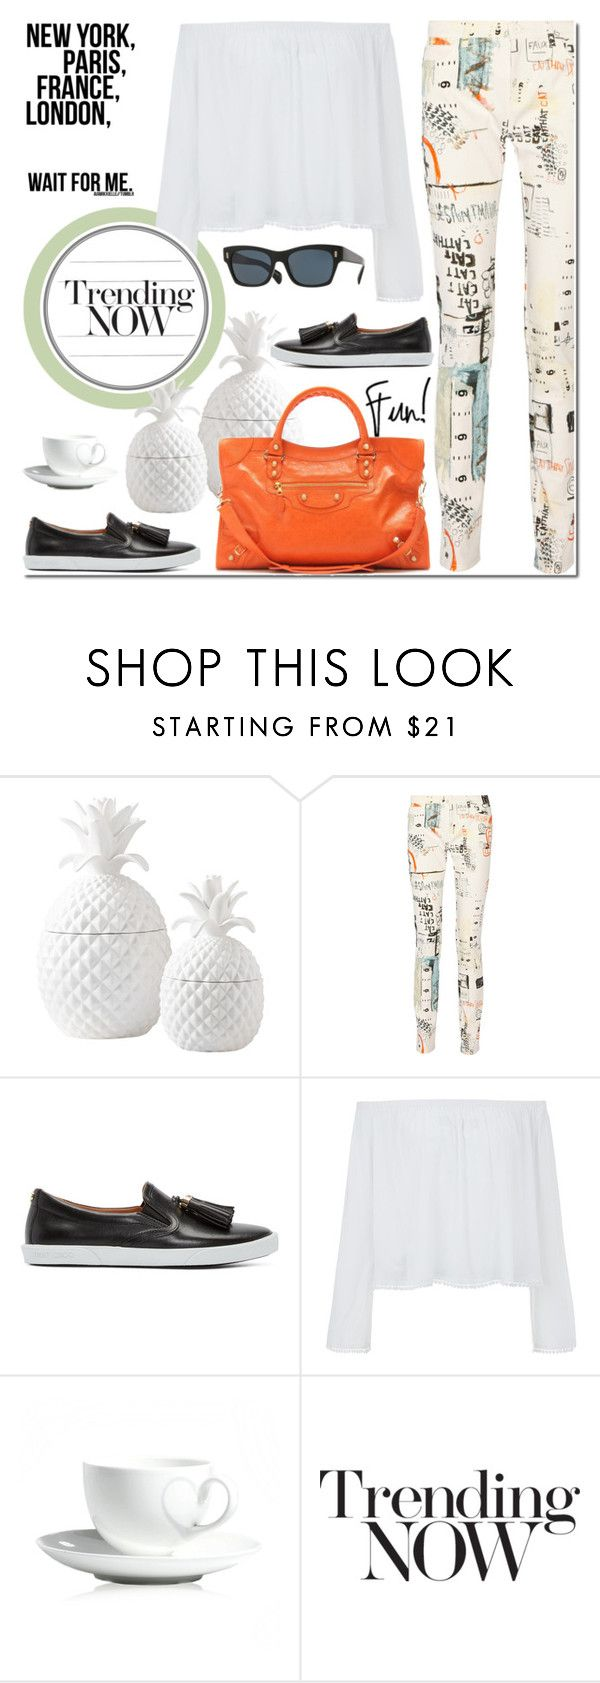 """Untitled #1362"" by elena-777s ❤ liked on Polyvore featuring Dot & Bo, MM6 Maison Margiela, Jimmy Choo, Olsen, Papillon and Balenciaga"